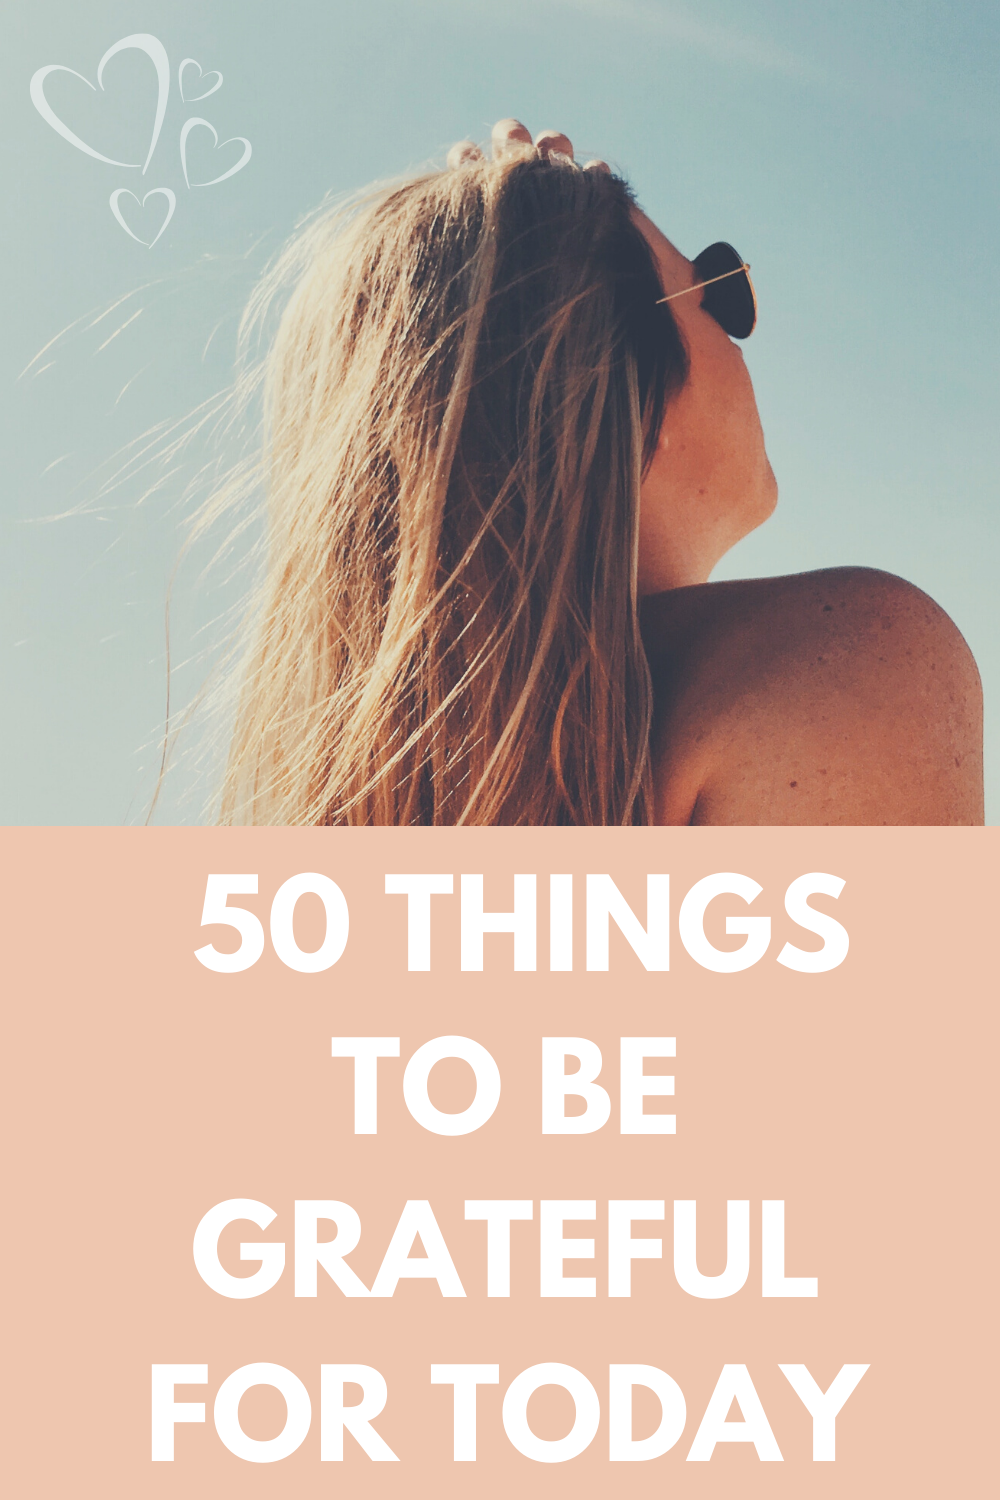 50 Things To Be Grateful For Today